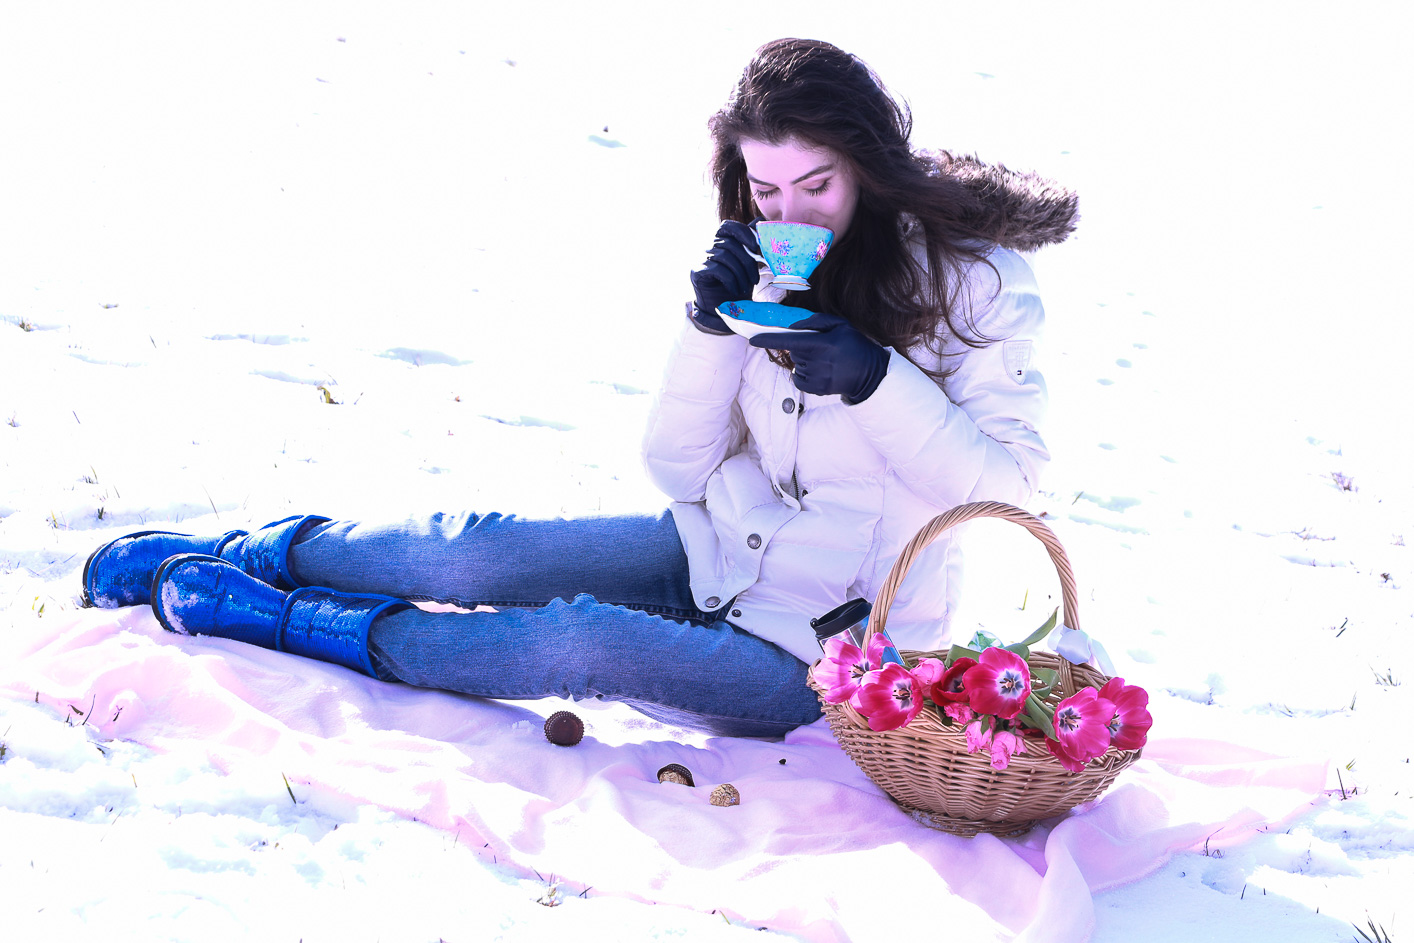 Fashion blogger Veronika Lipar of Brunette From Wall Street sharing how to style the puffer jacket and UGG boots for a winter picnic in the snow